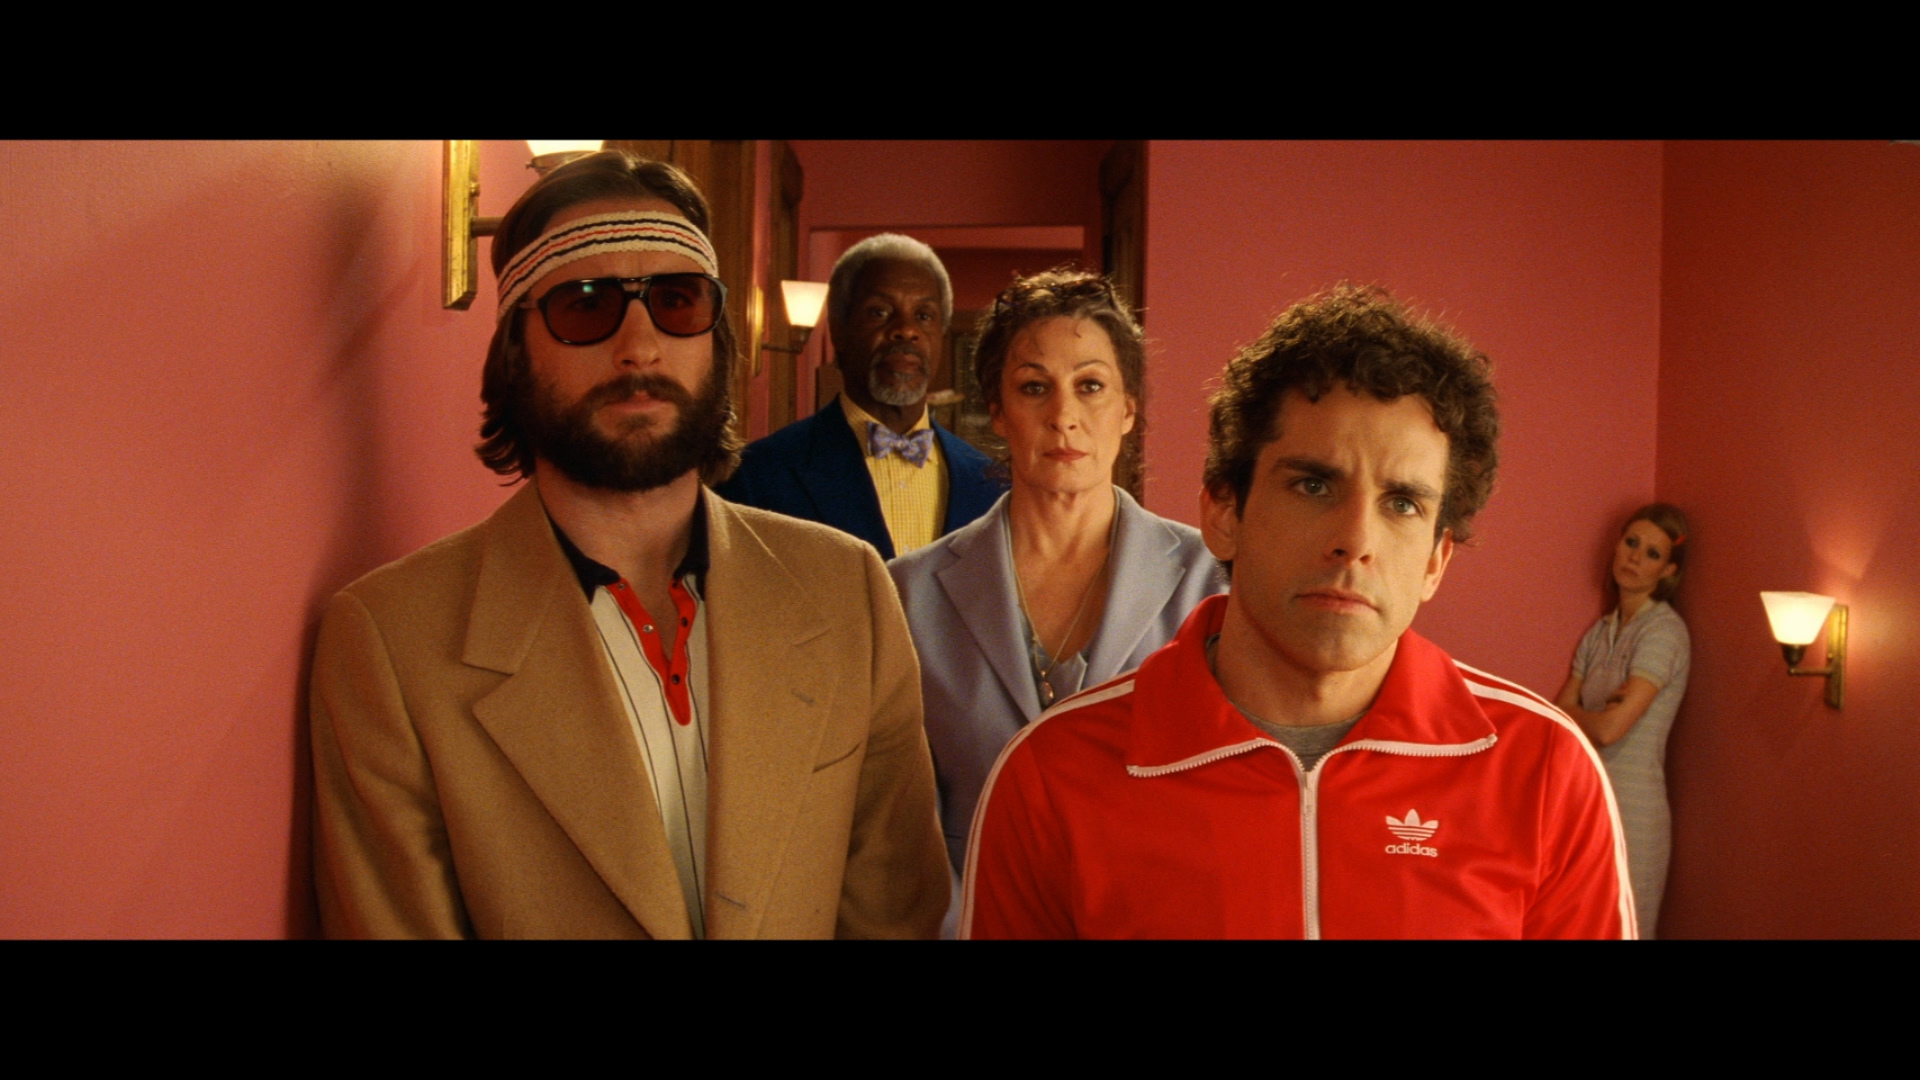 https://i1.wp.com/www.dvdbeaver.com/film4/blu-ray_reviews57/royal%20_tenebaums_blu-ray_/large/large_royal_tenebaums_blu-ray_x05.jpg